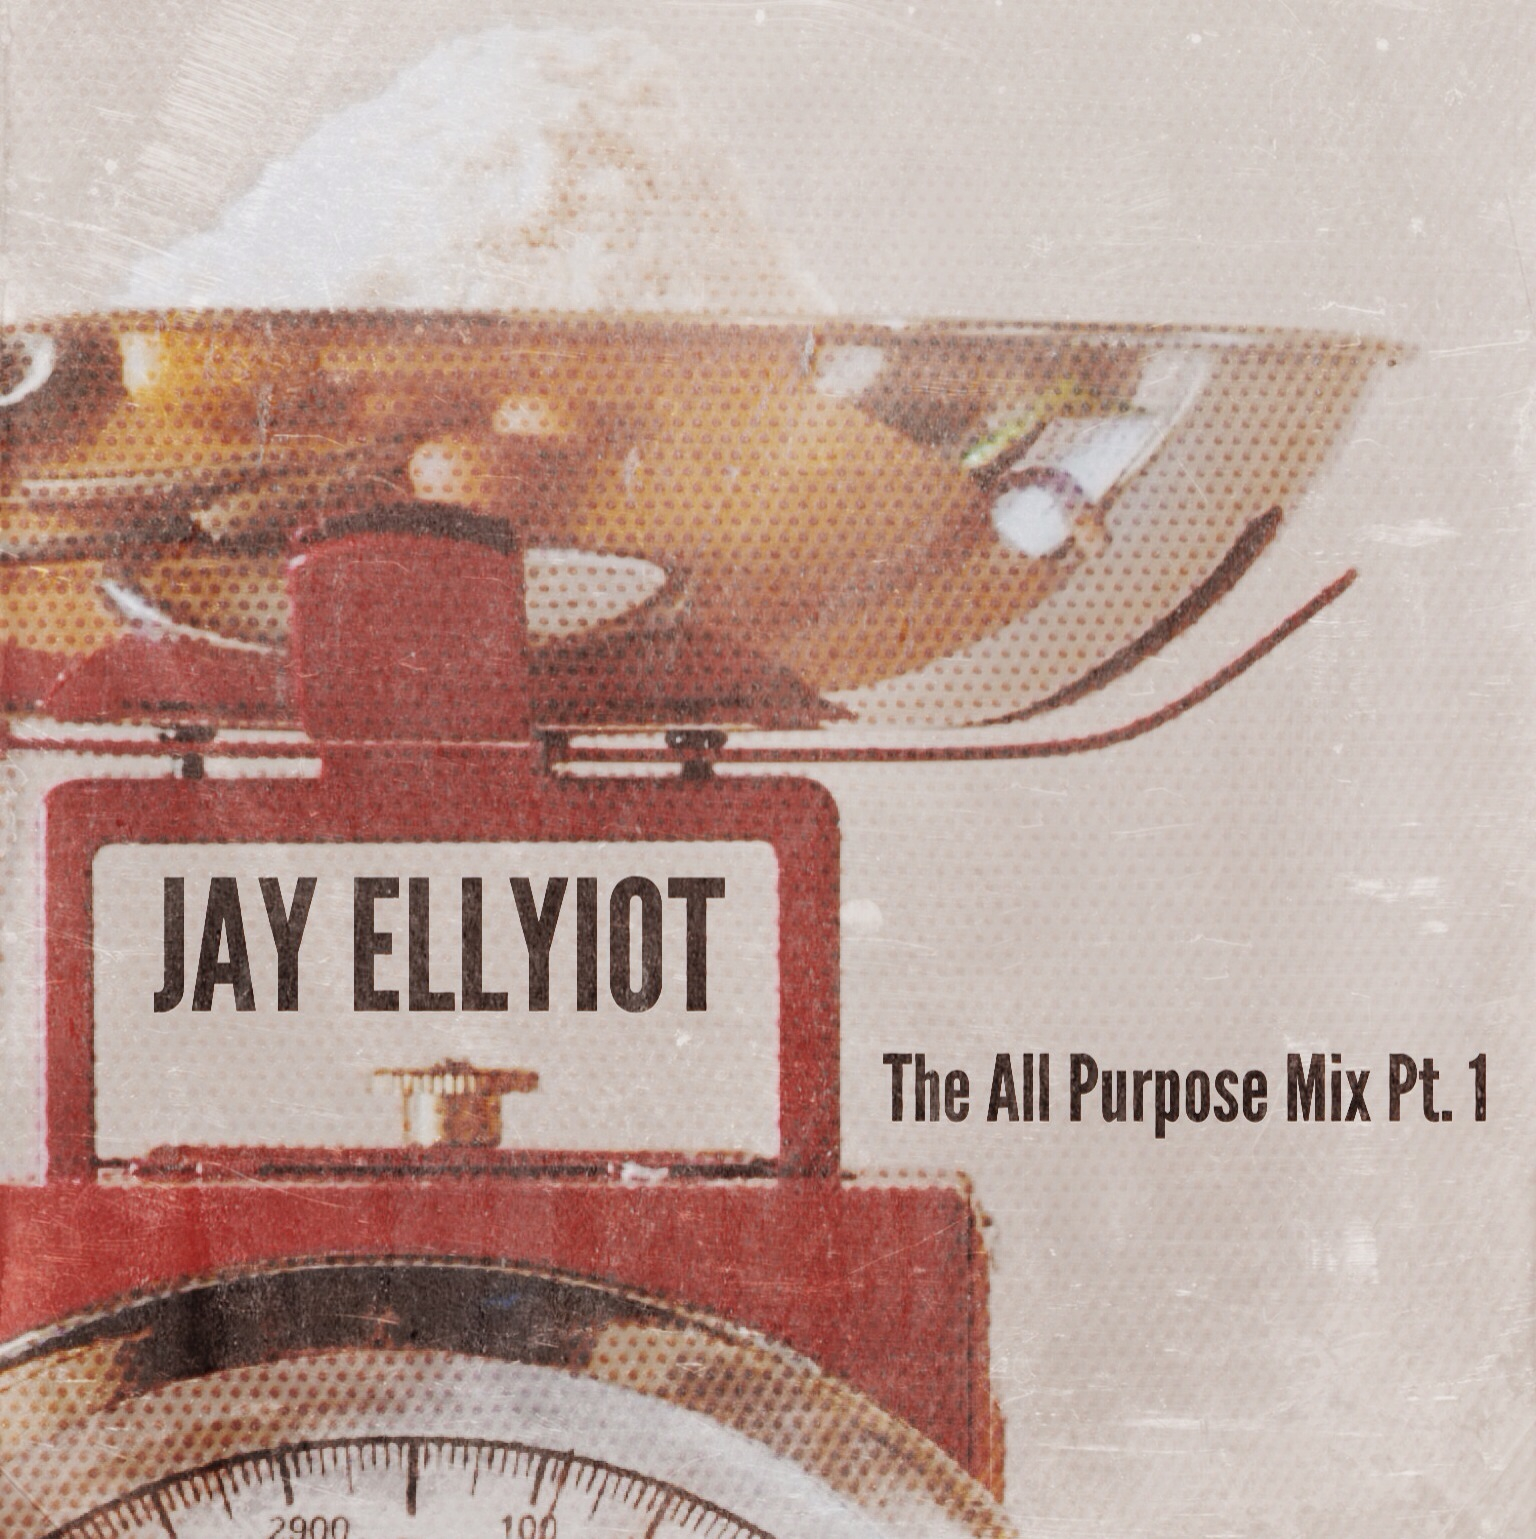 Jay Ellyiot - The All Purpose Mix Pt. 1